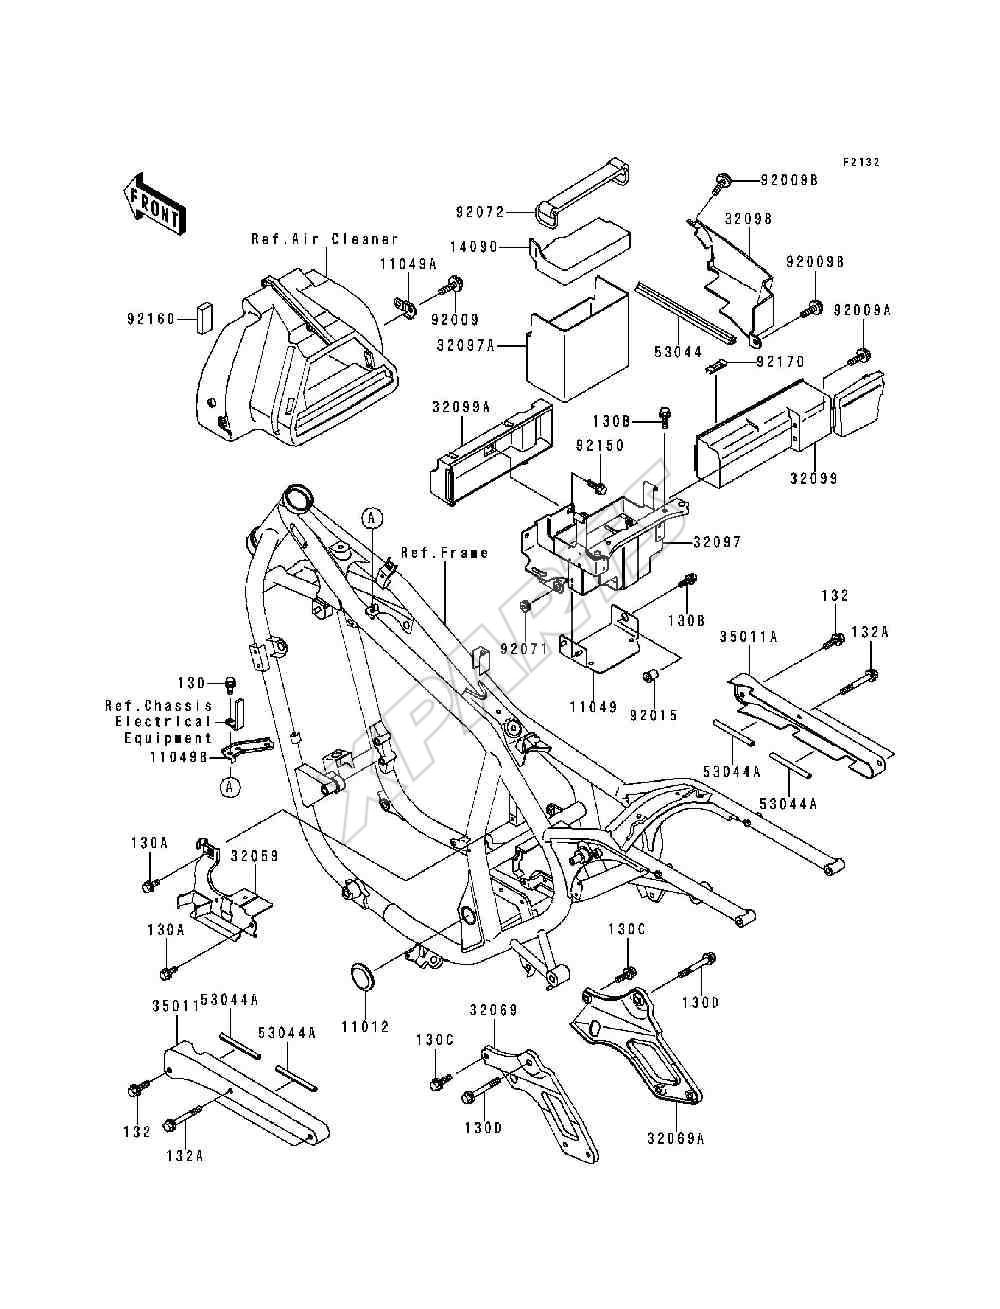 medium resolution of kawasaki mule 3010 fuel pump wiring diagram kawasaki mule 2002 kawasaki lakota 300 wiring diagram 98 kawasaki lakota 300 wiring diagram